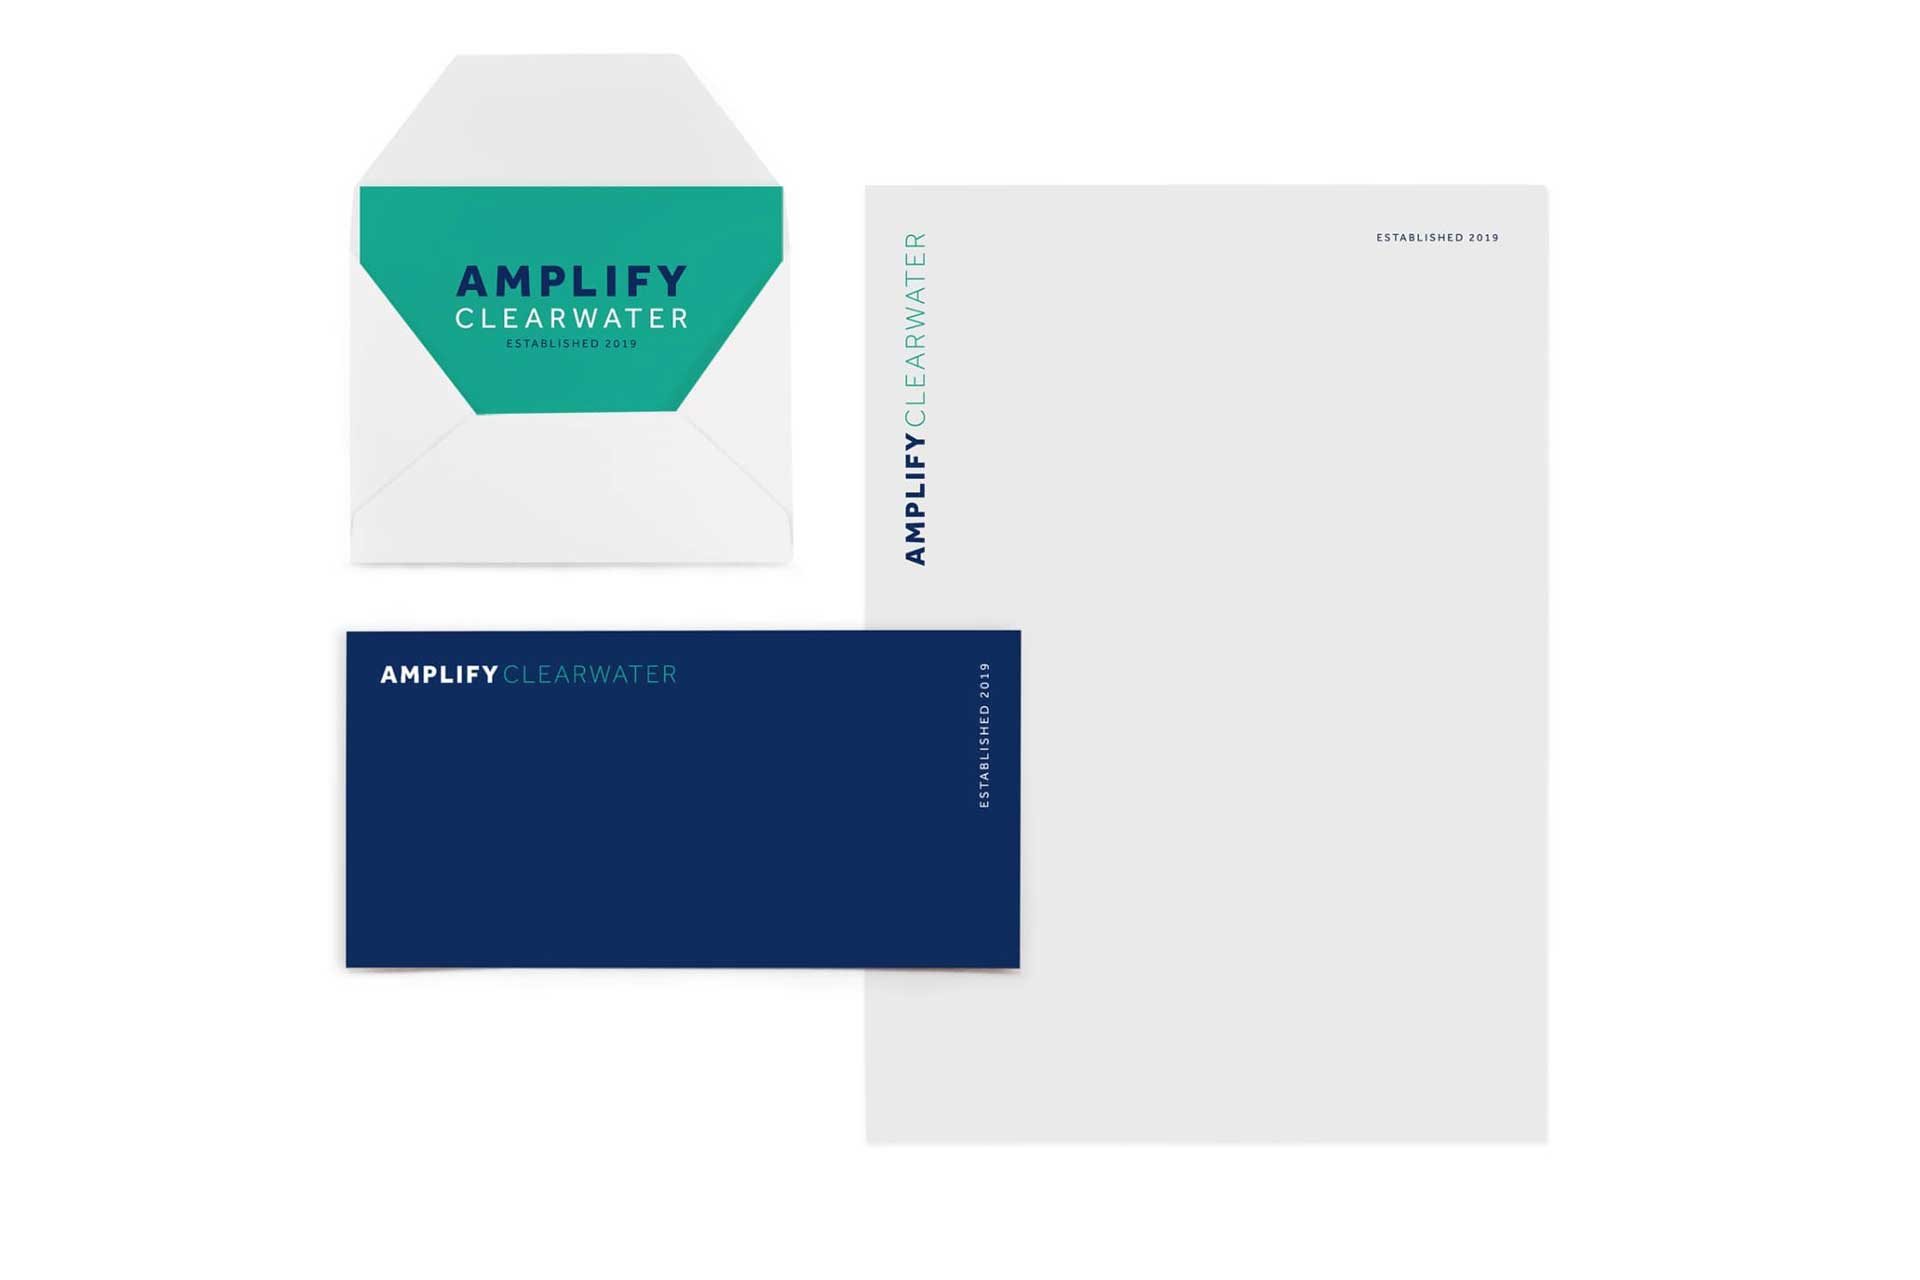 amplify-clearwater-stationary-chamber-of-commerce-branding-Bandwagon-Branding-Agency-New-Orleans-min